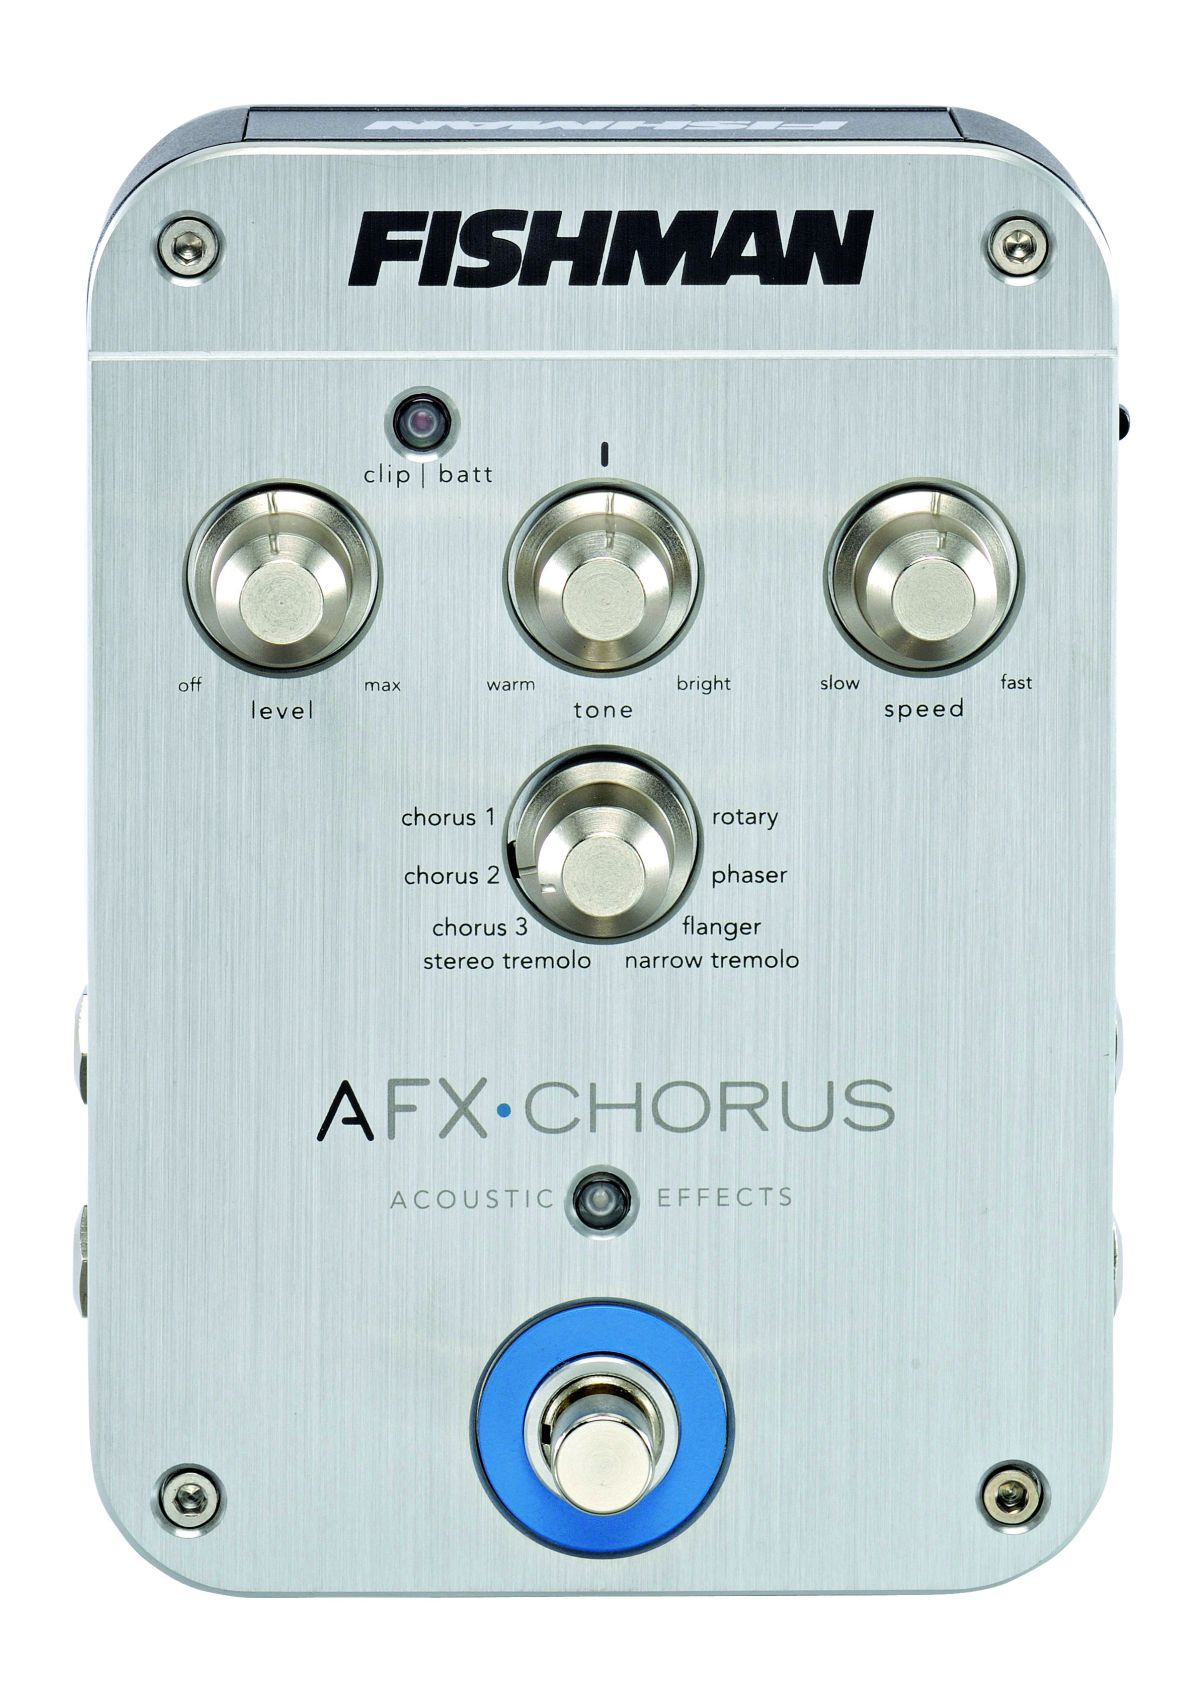 fishman afx acoustic chorus pedal review musicradar. Black Bedroom Furniture Sets. Home Design Ideas